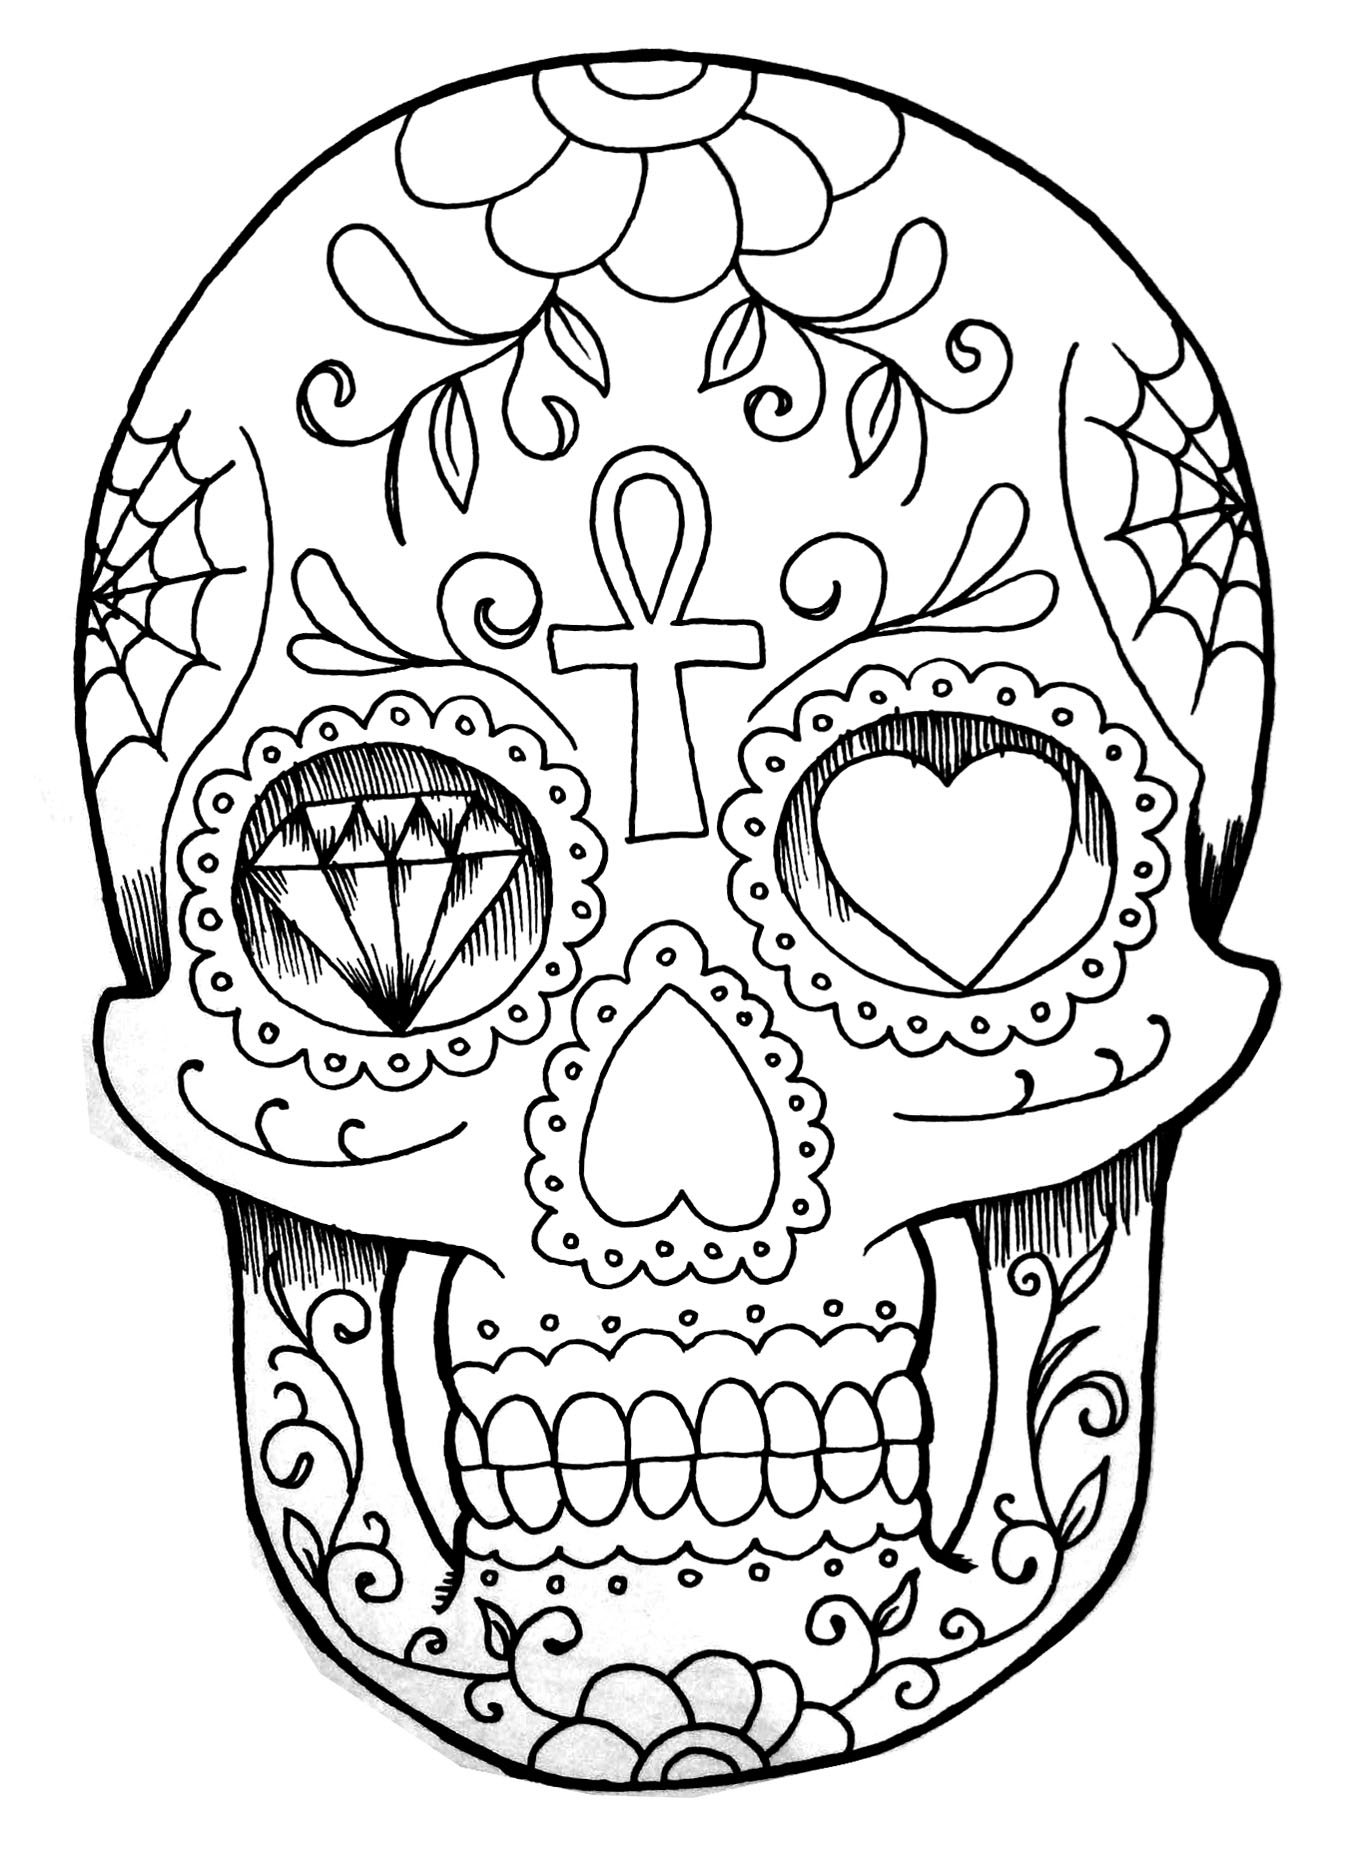 Tattoo of a skull with various drawings